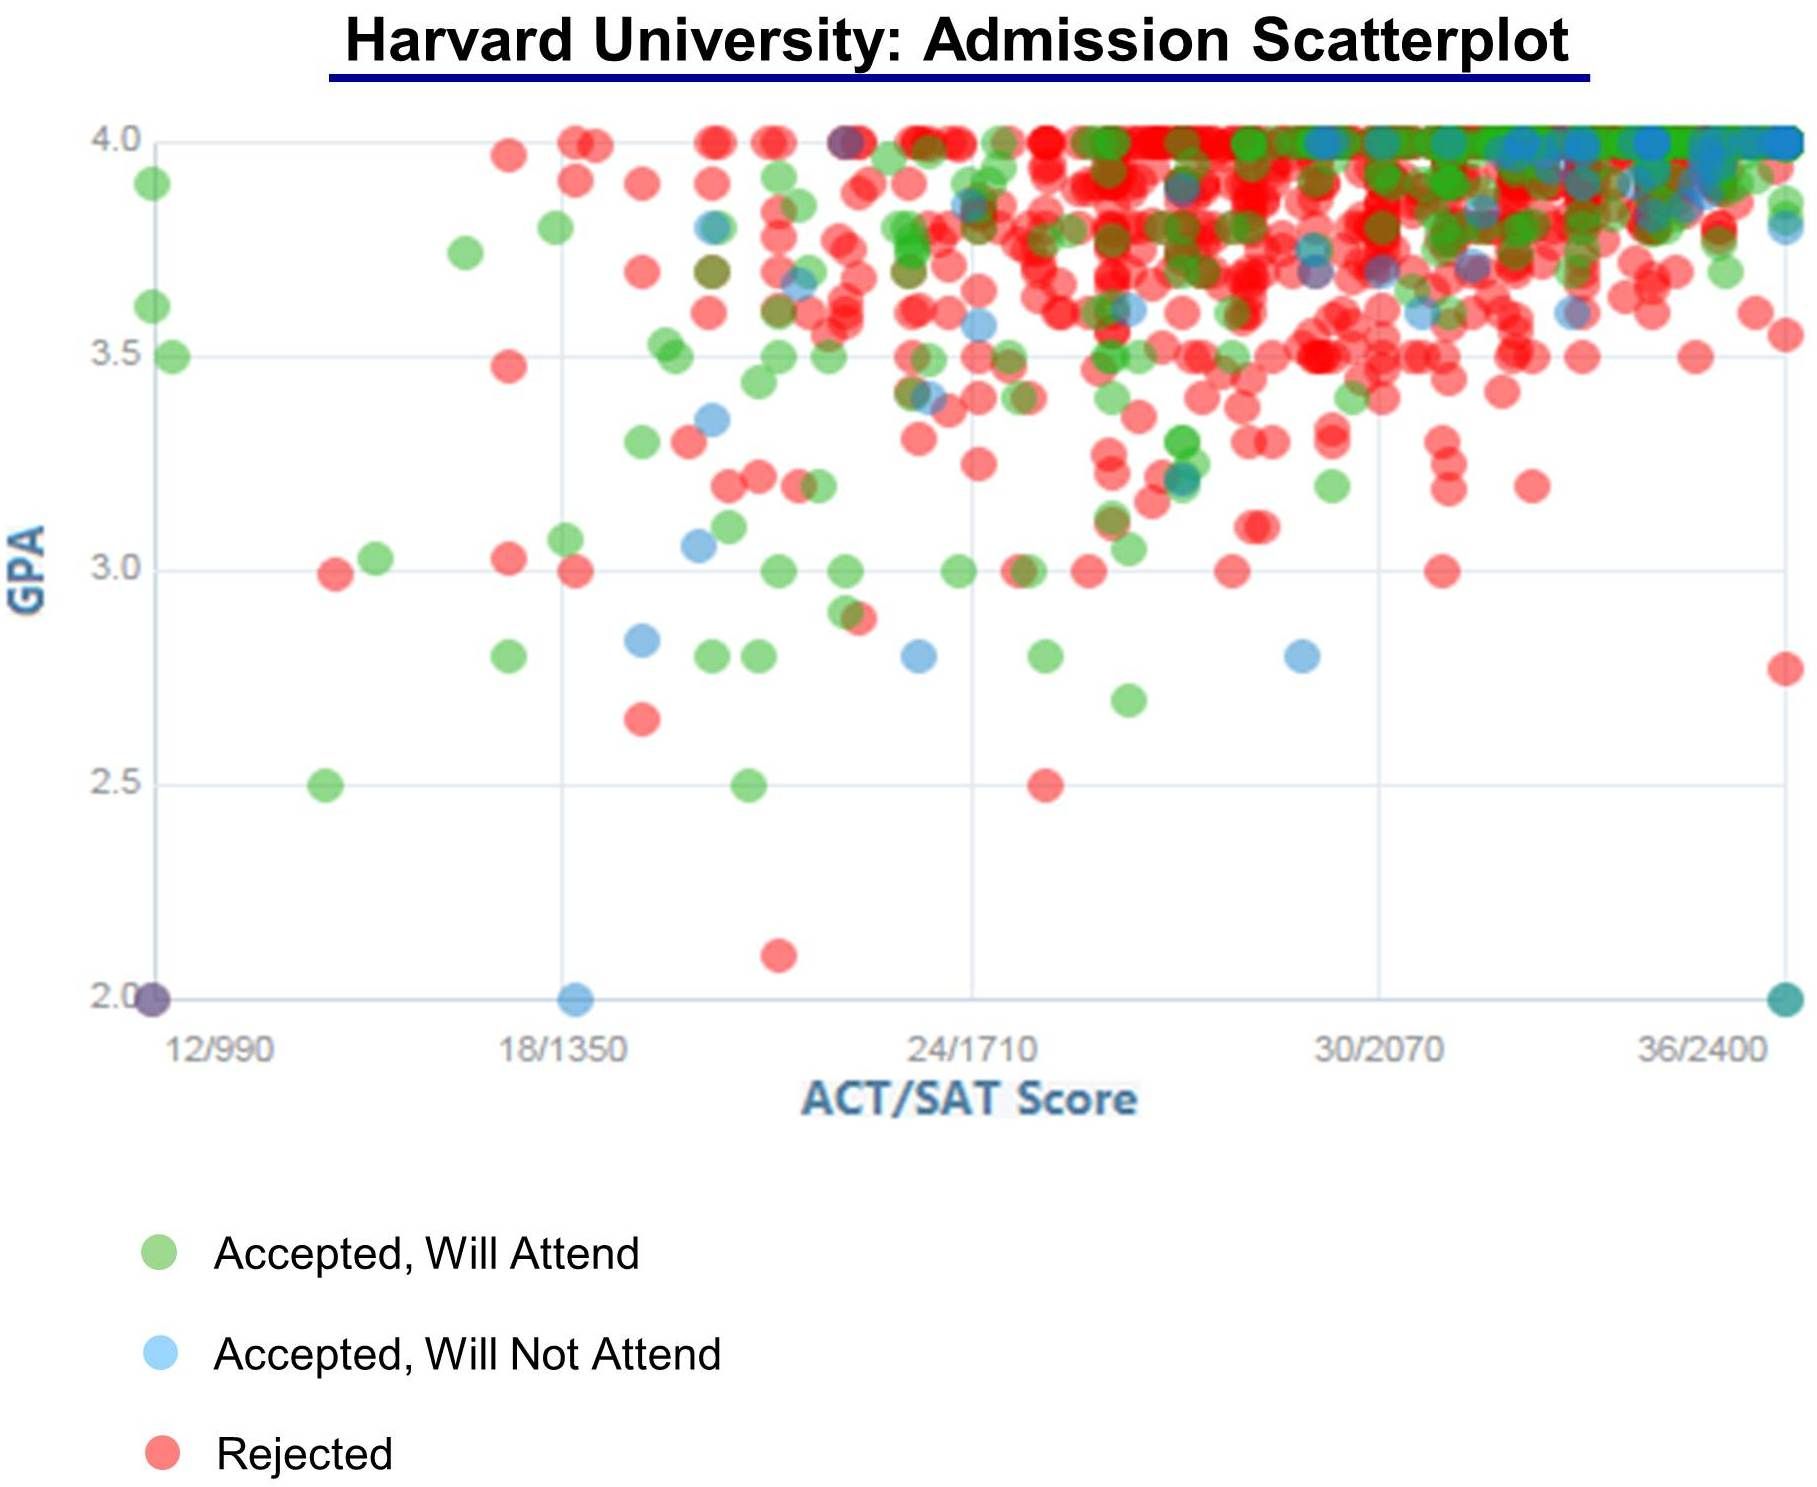 harvard essay requirements Get into harvard university the smart way chaval brasil via compfight my experience at harvard proved to be different from my undergraduate career, but the latter had prepared me well.